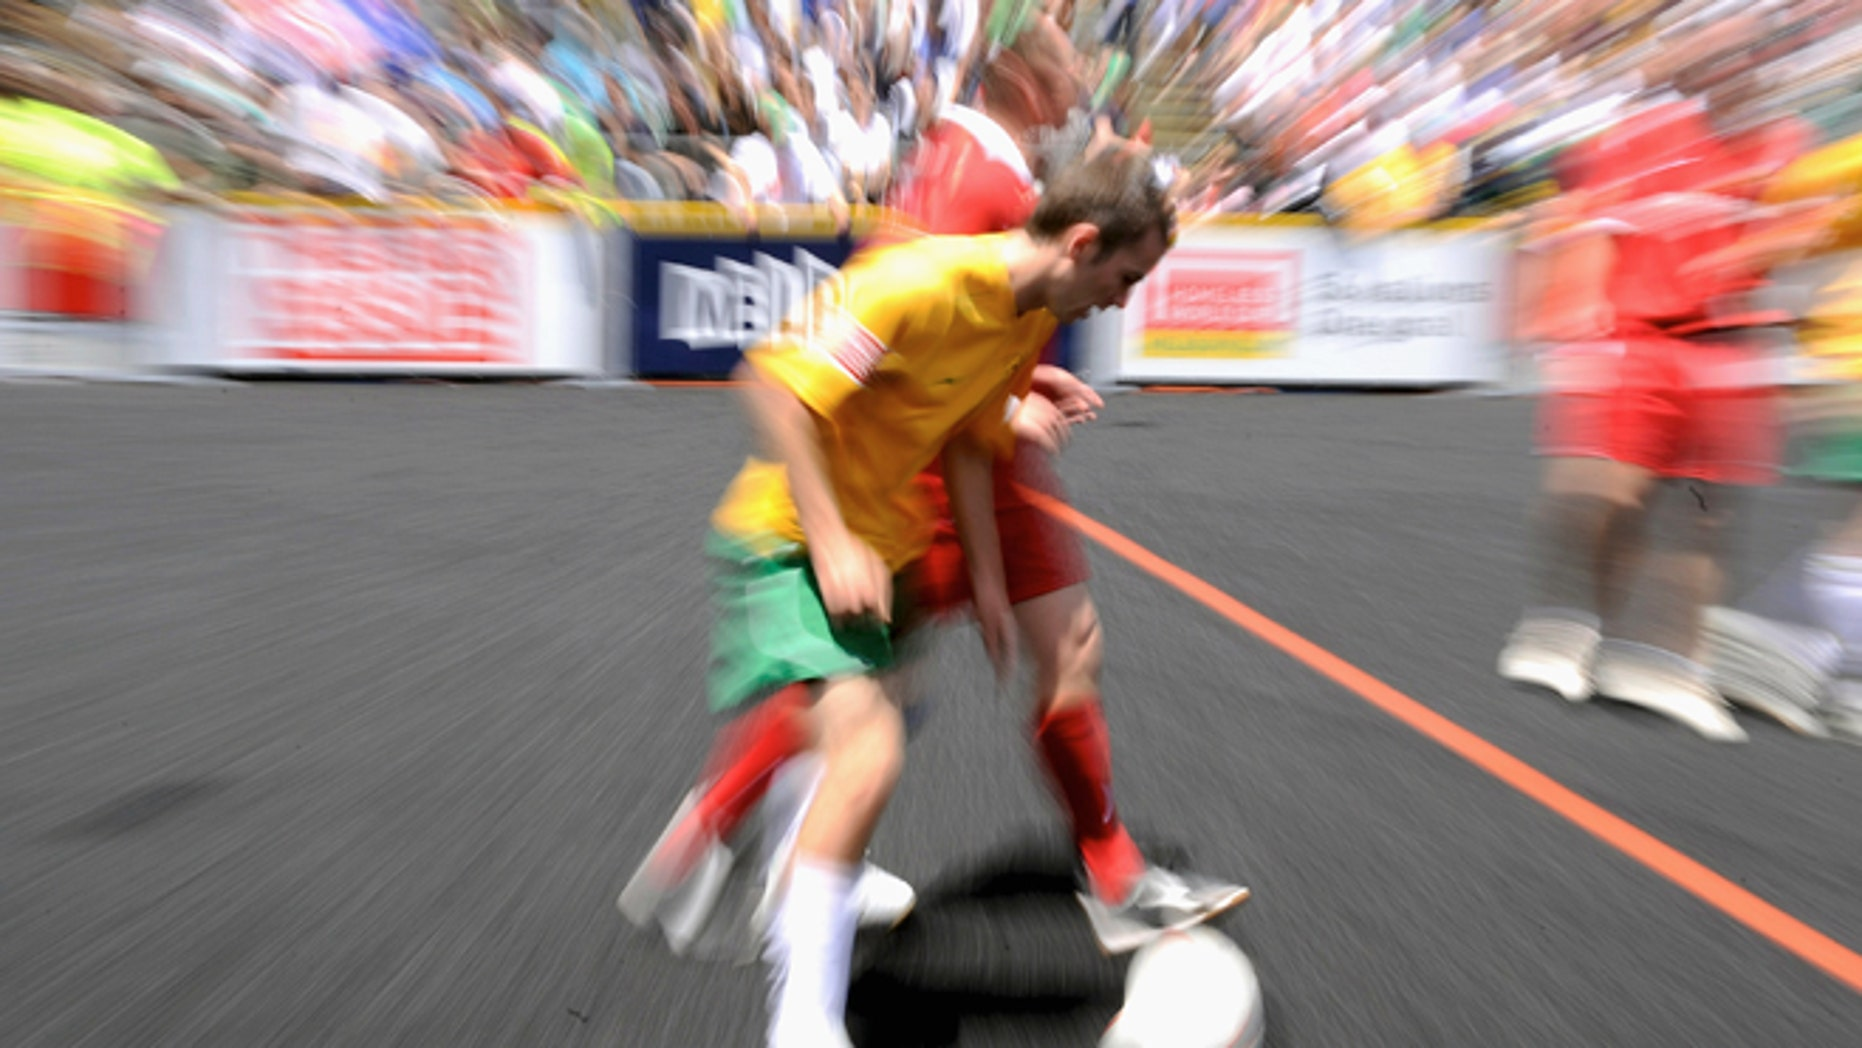 MELBOURNE, AUSTRALIA - DECEMBER 03: Coen Slaughter of Australia controls the ball during the Australia and the Czech Republic at the 2008 Homeless World Cup at Federation Square on December 3, 2008 in Melbourne, Australia.  (Photo by Robert Cianflone/Getty Images)